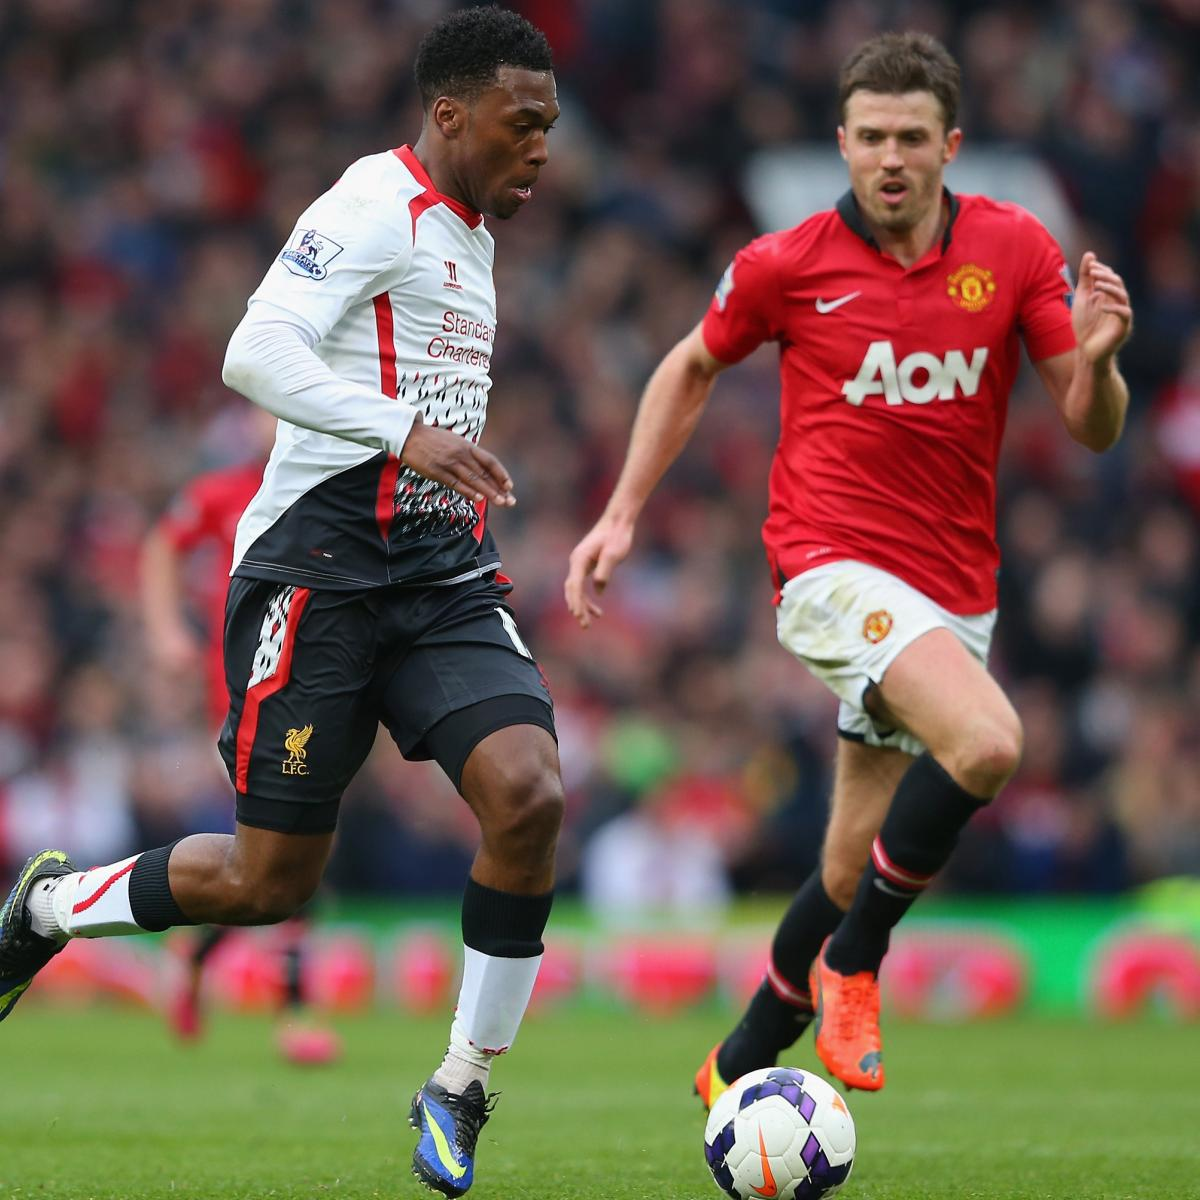 Live Streaming Soccer News Liverpool Vs Benfica Live: Liverpool Vs. Manchester United: Date, Time, Live Stream